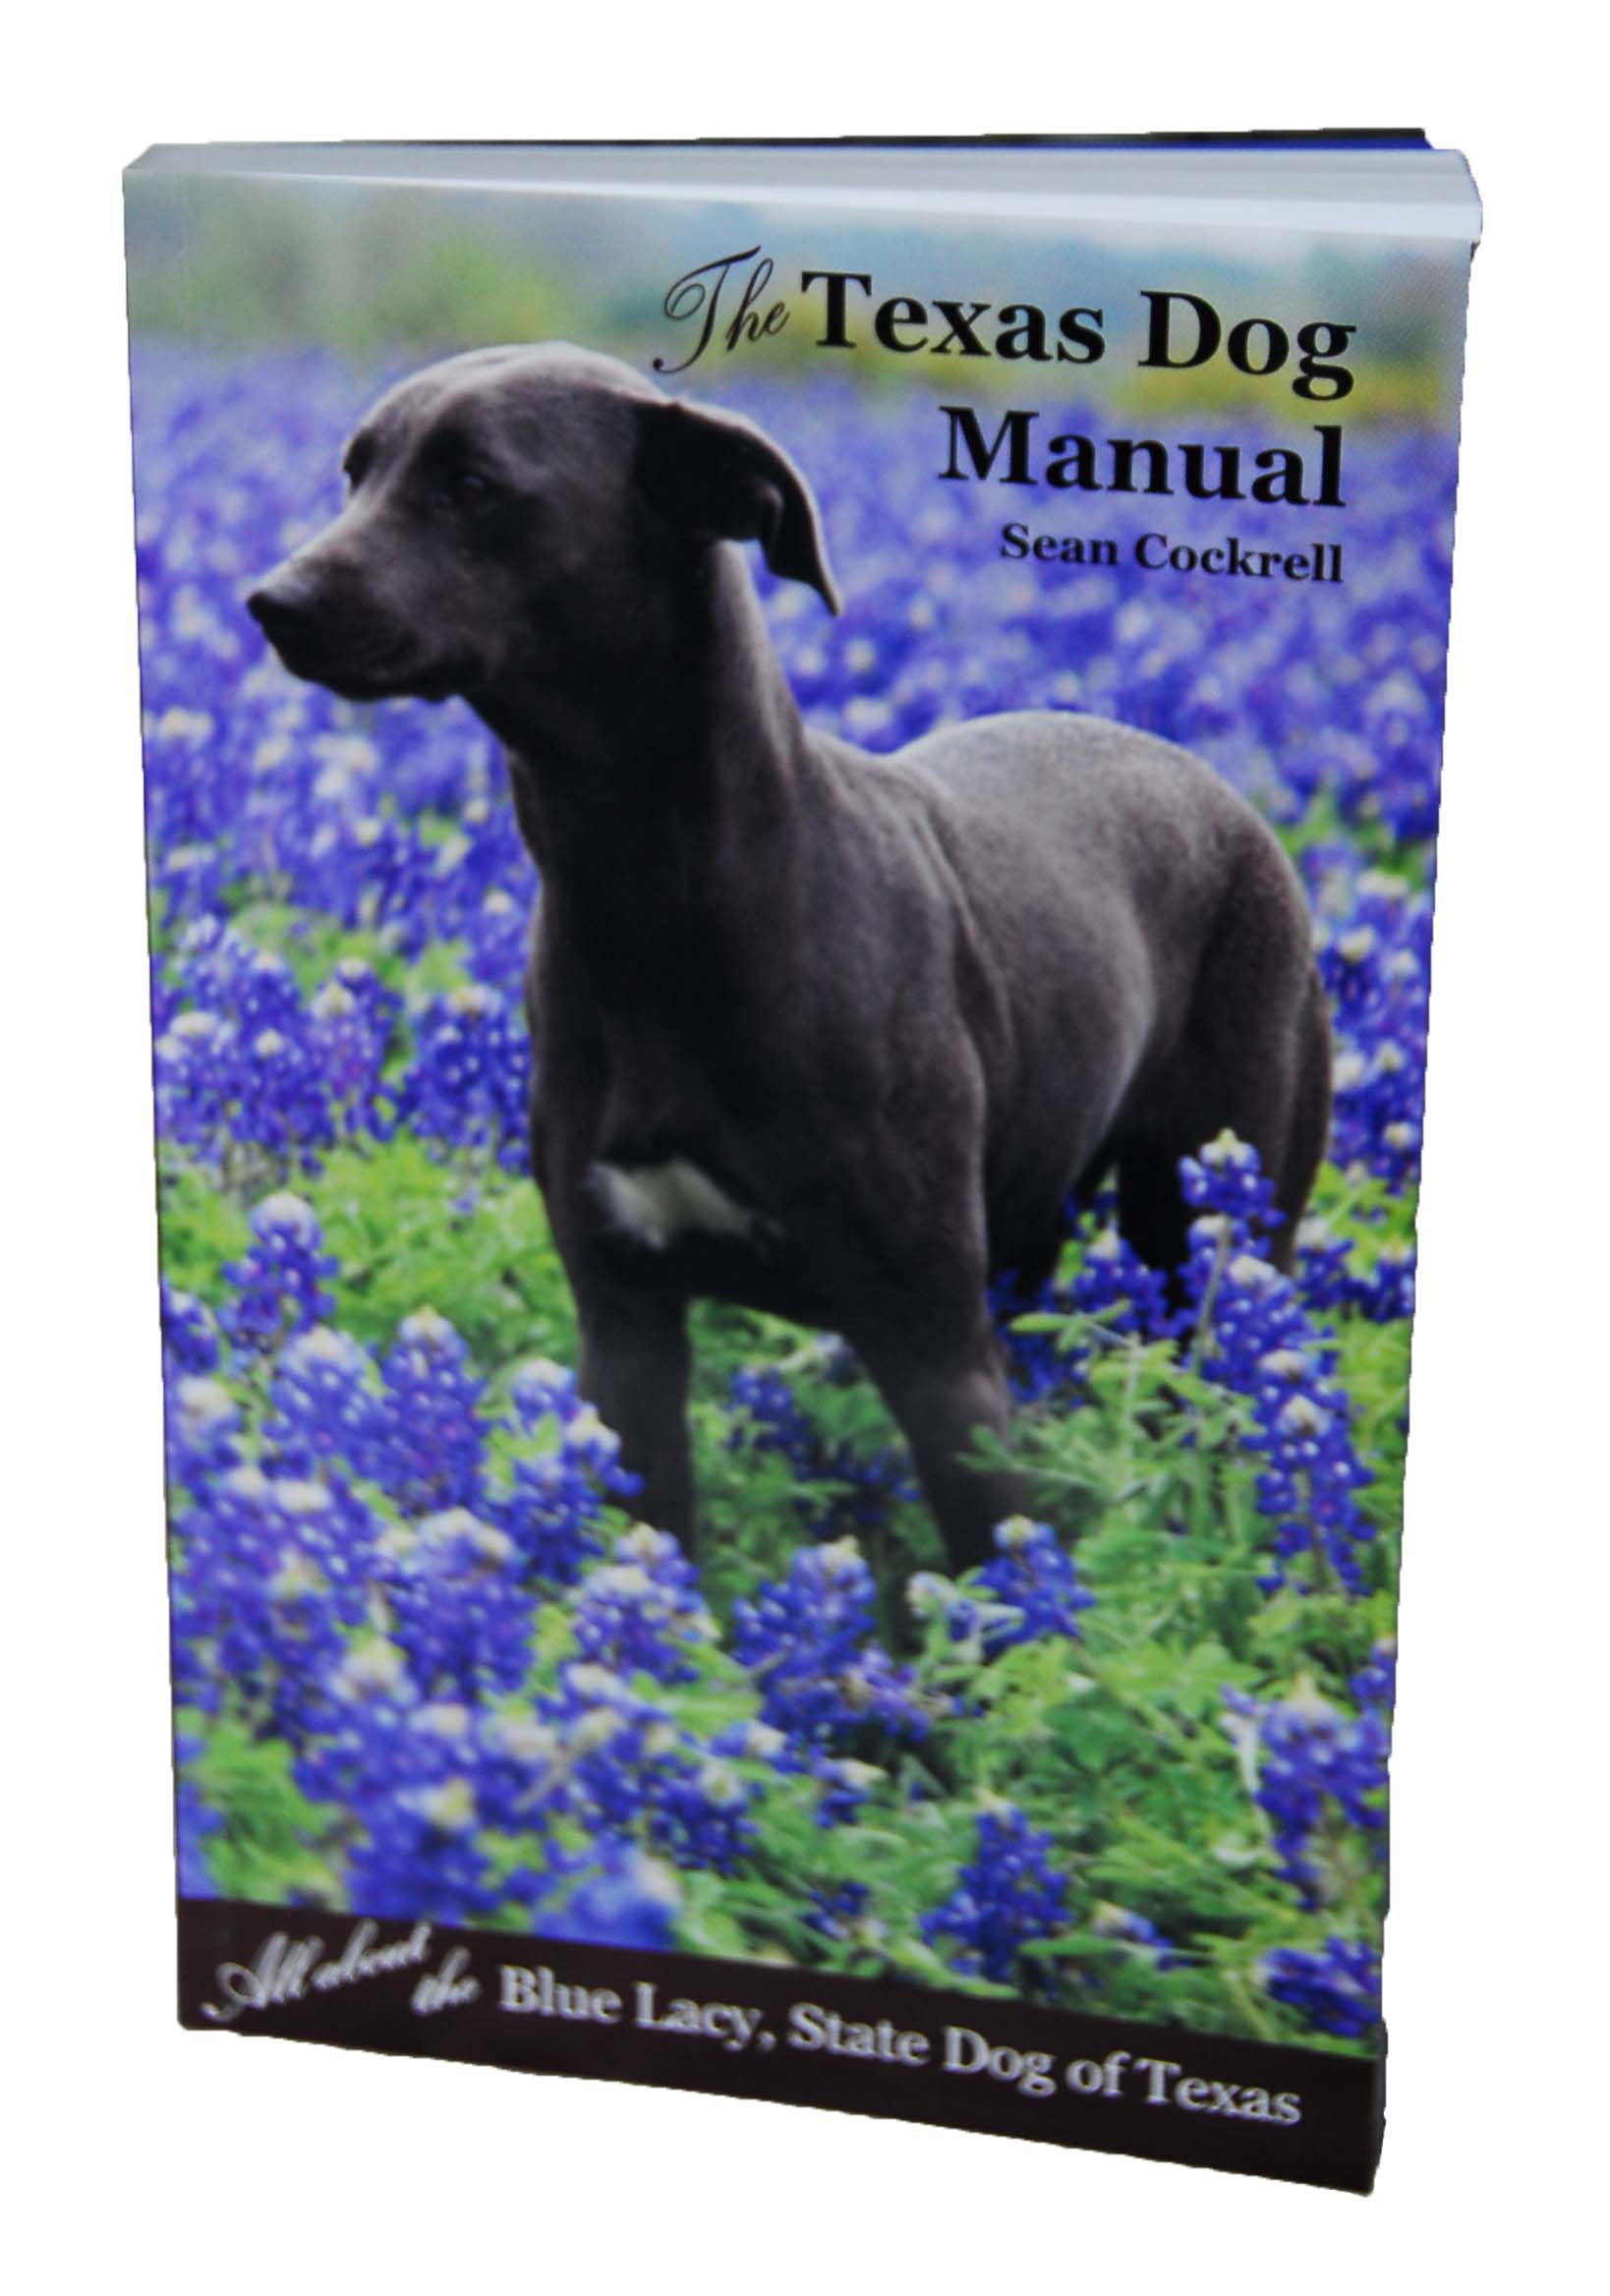 the Texas Dog Manual all about the Blue Lacy, State Dog of Texas